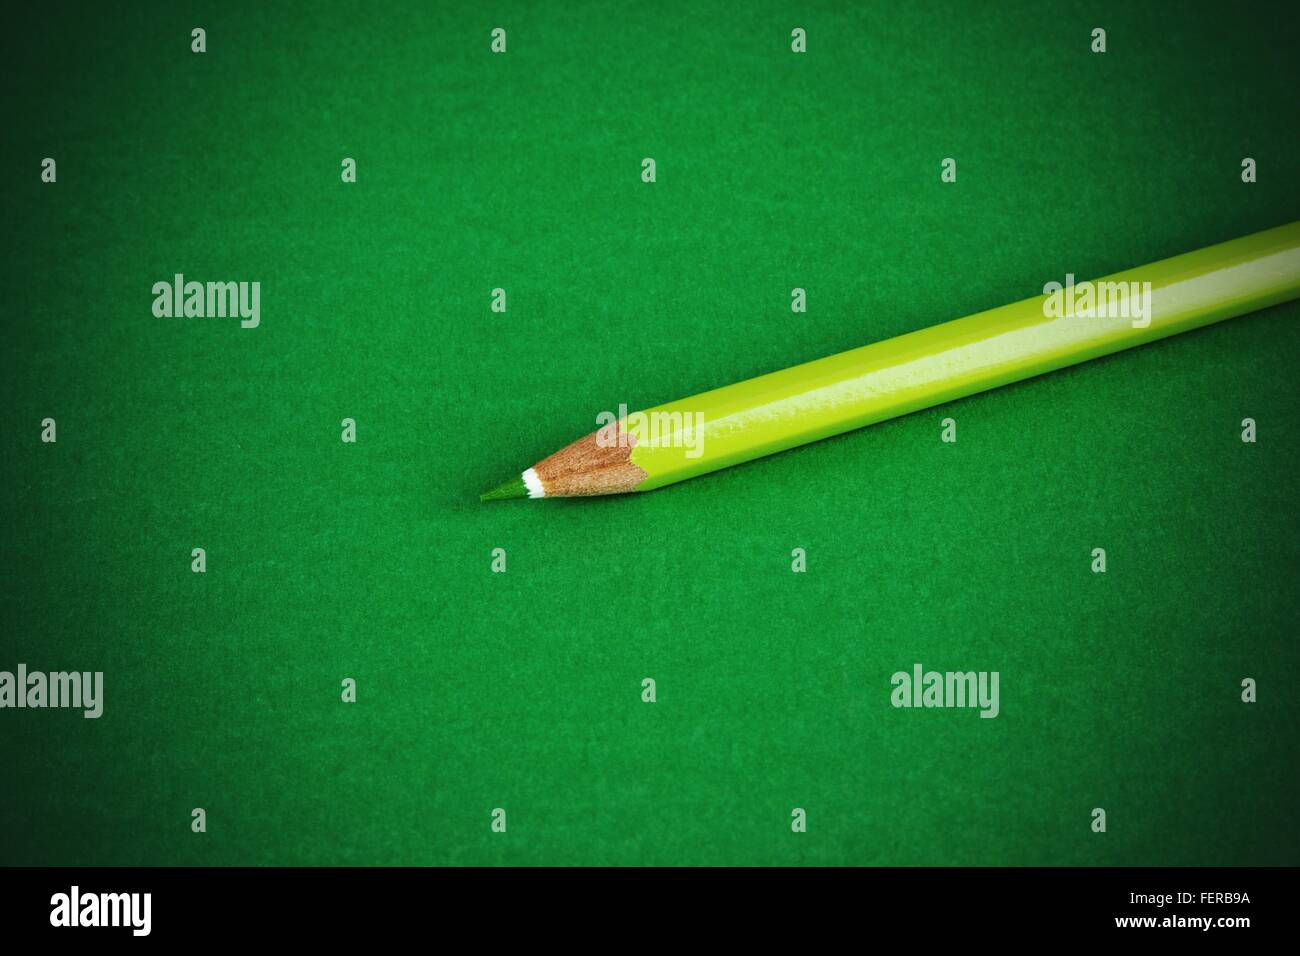 Green Colored Pencil Against Colored Background - Stock Image